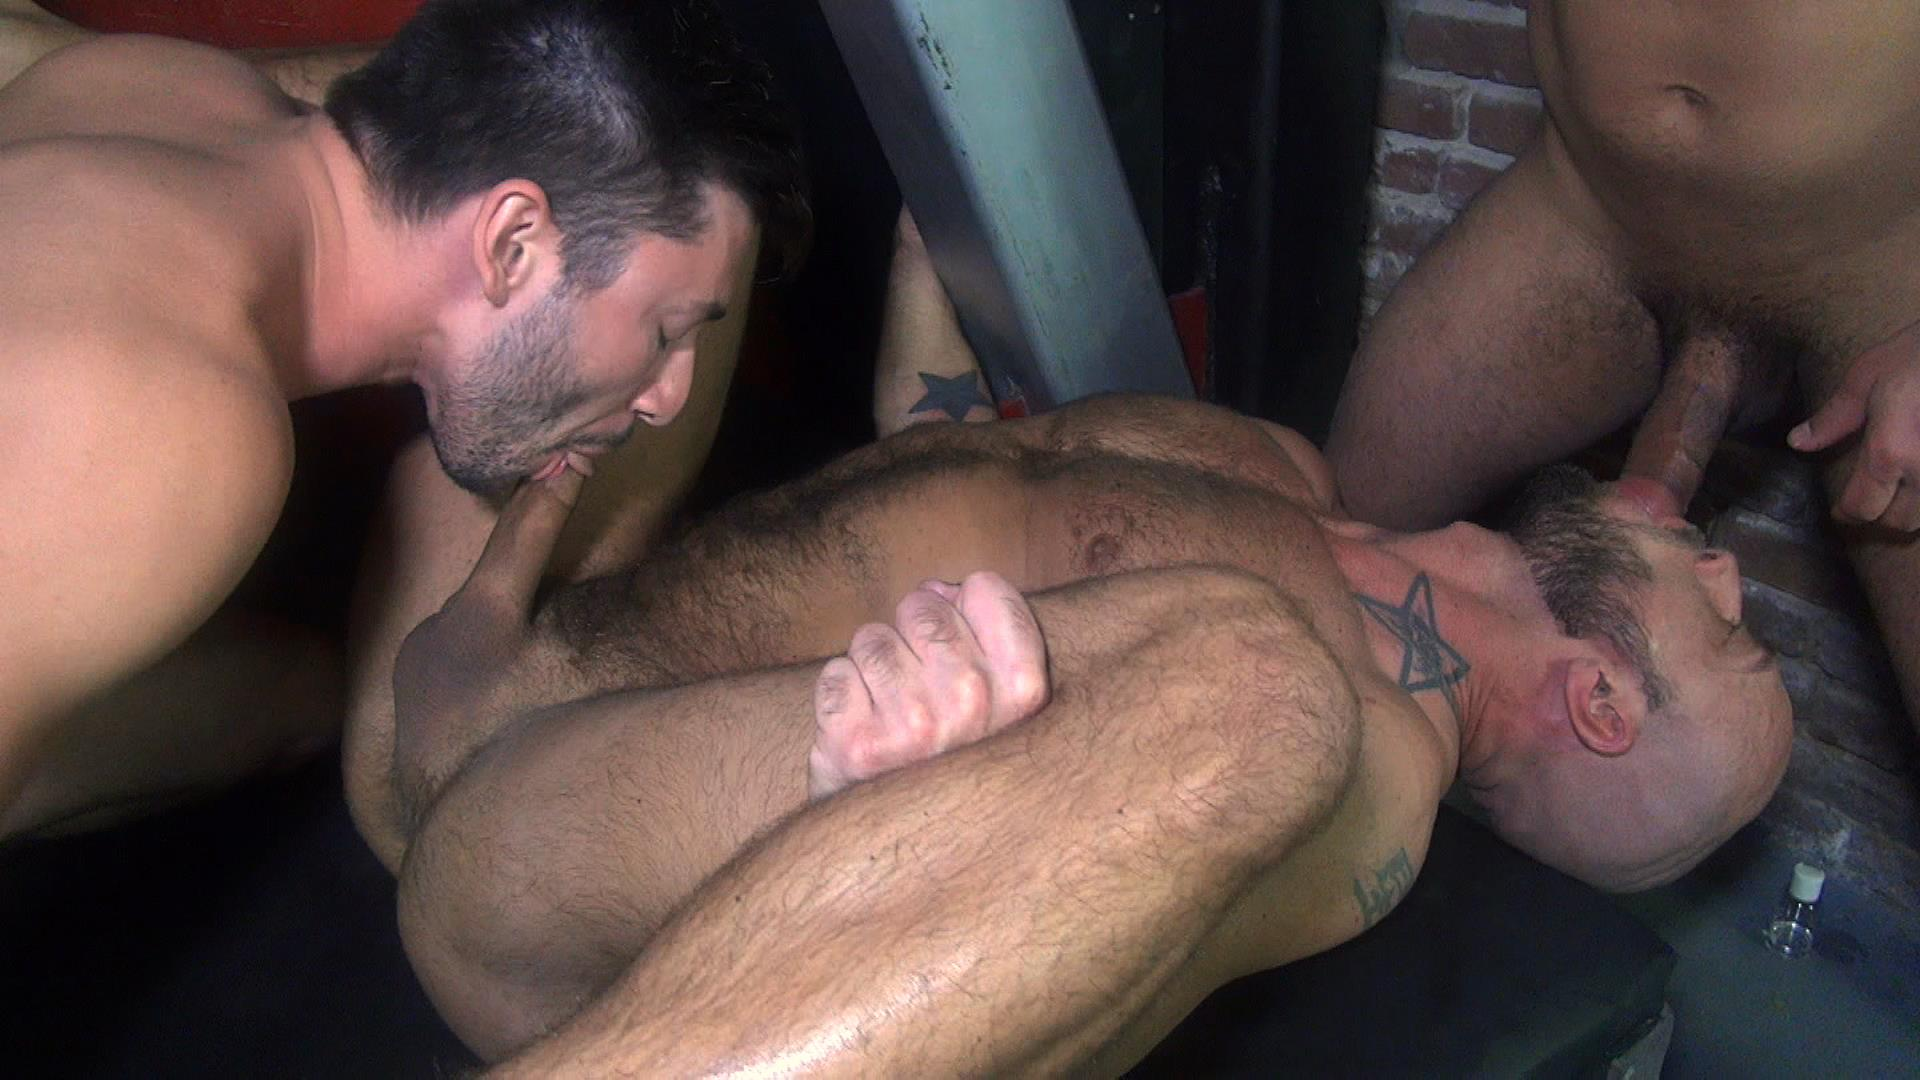 Raw-Fuck-Club-Dylan-Strokes-and-Scott-DeMarco-and-Jack-Andy-and-Jessie-Colter-and-Teddy-Bryce-Bareback-Sex-Video-02 Jessie Colter's First Bareback Gangbang At A Sleazy Bathhouse